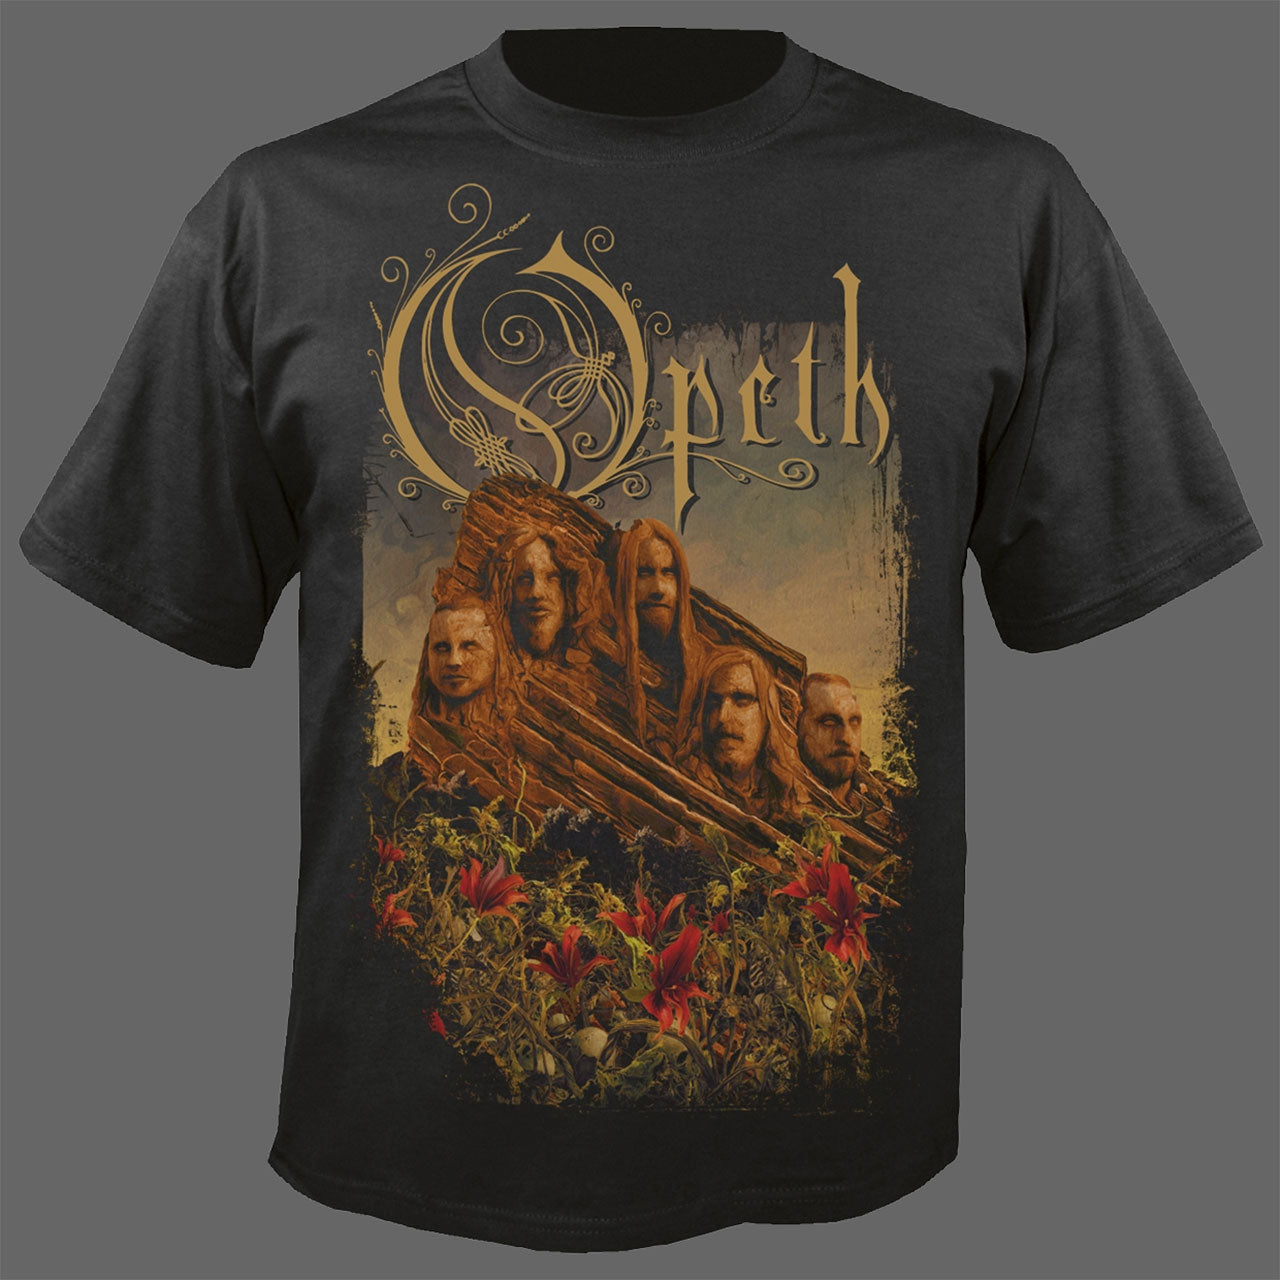 Opeth - Garden of the Titans (T-Shirt)